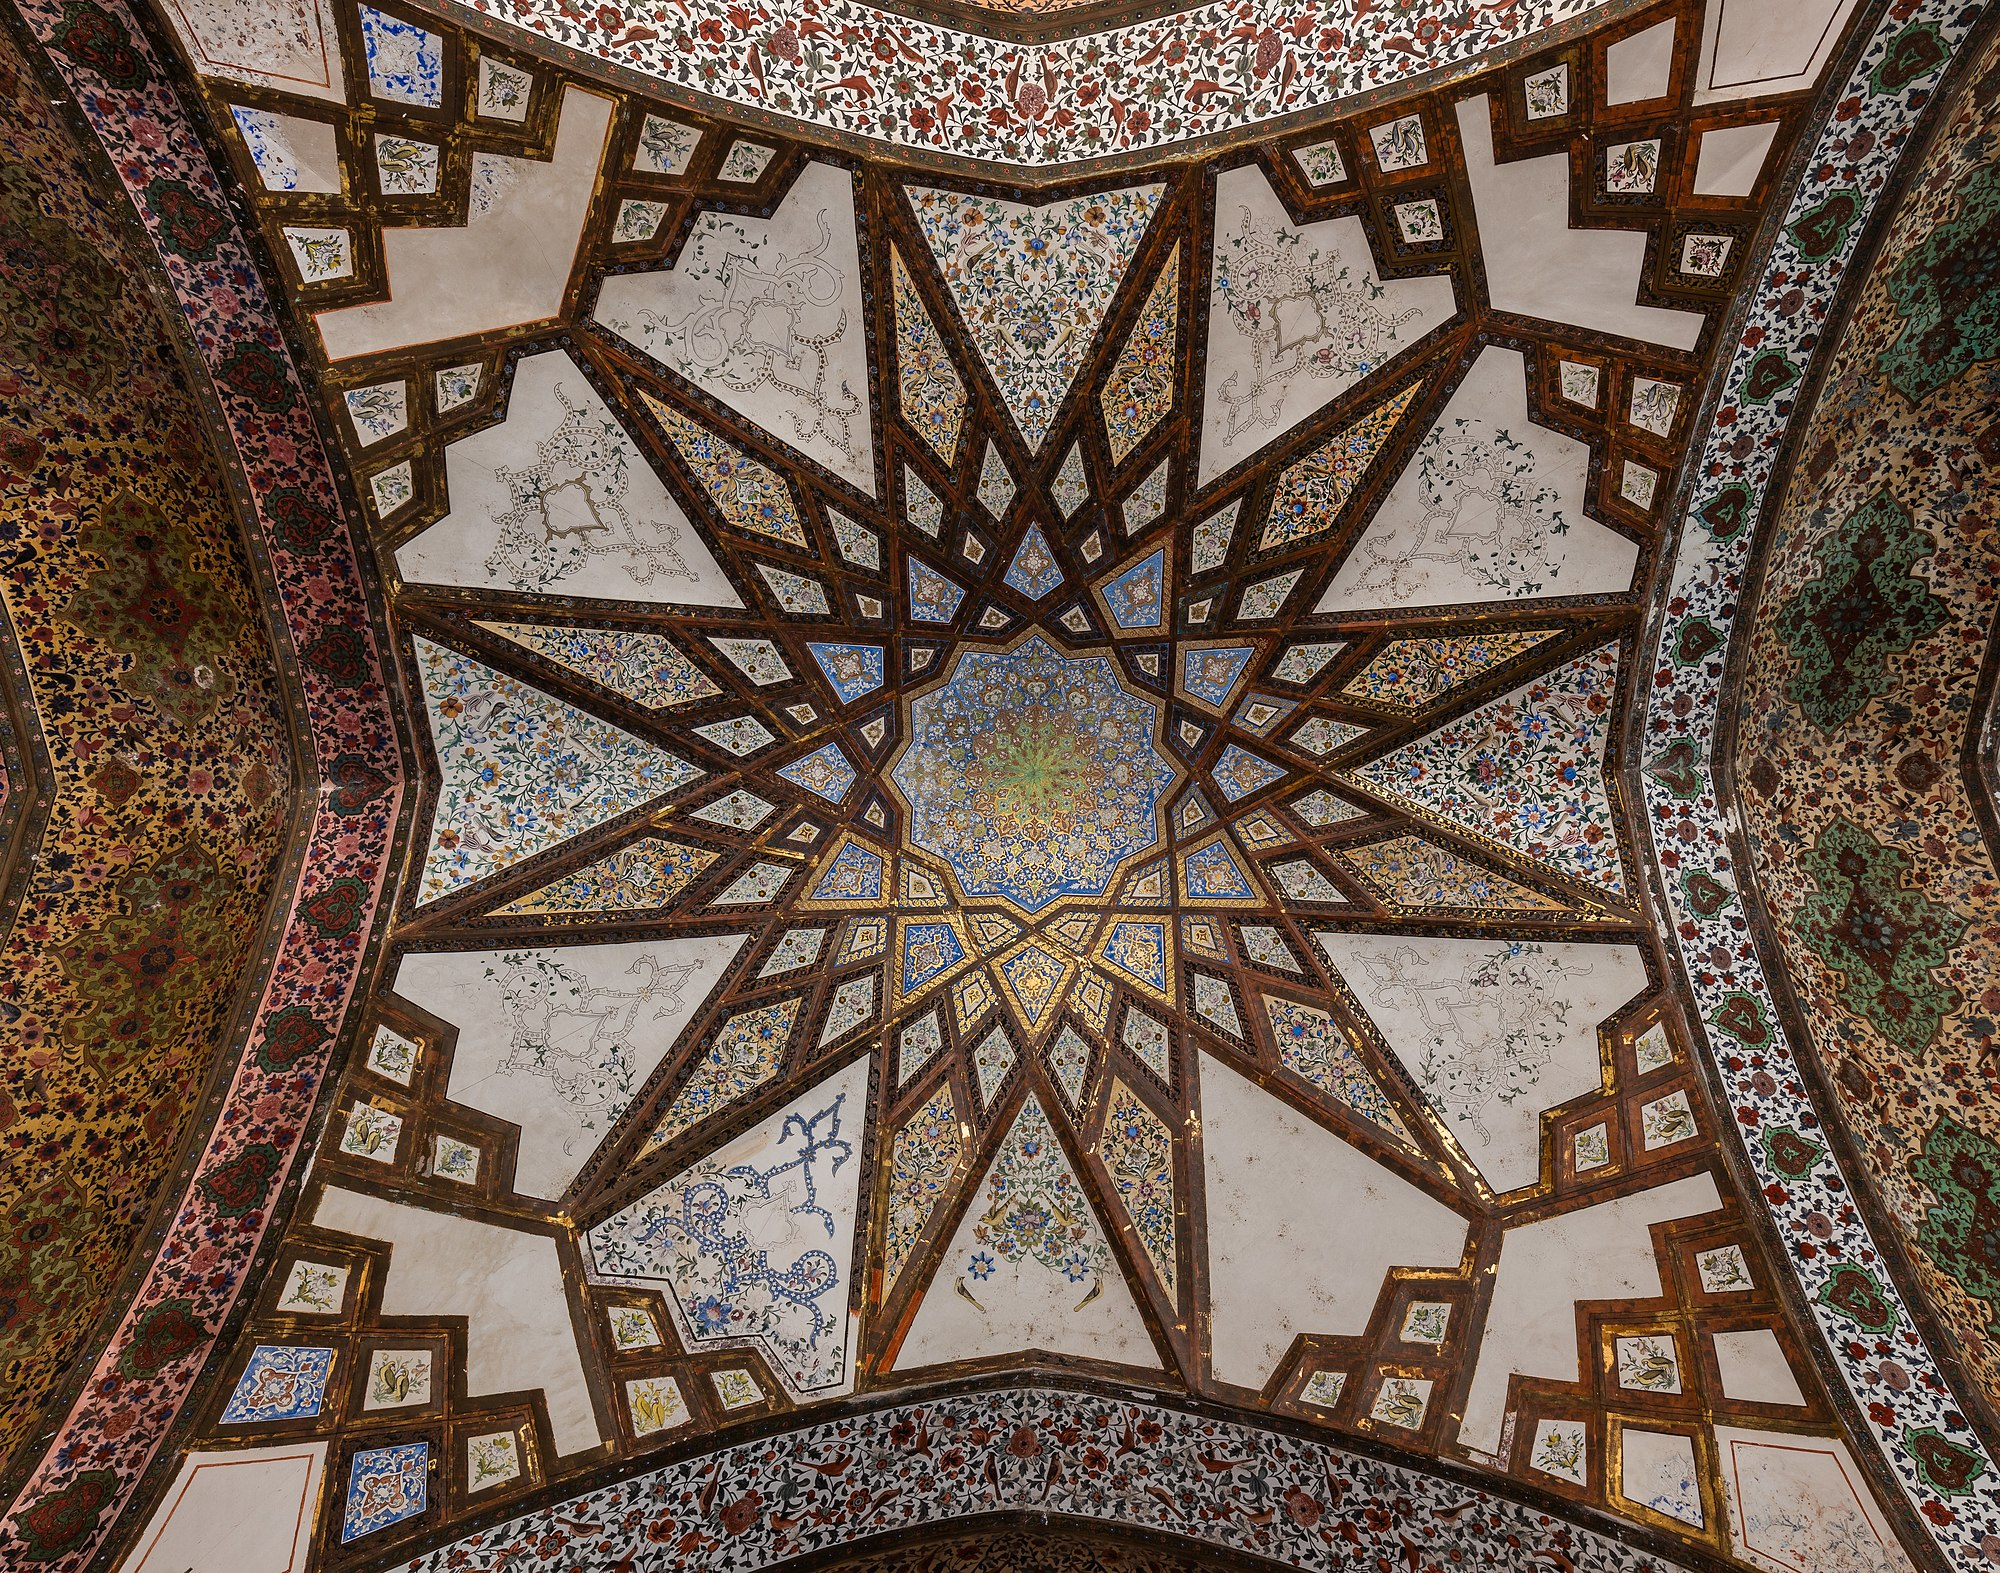 View of one of the domes of the Kushak located in the center of Fin Garden, city of Kashan, Iran.